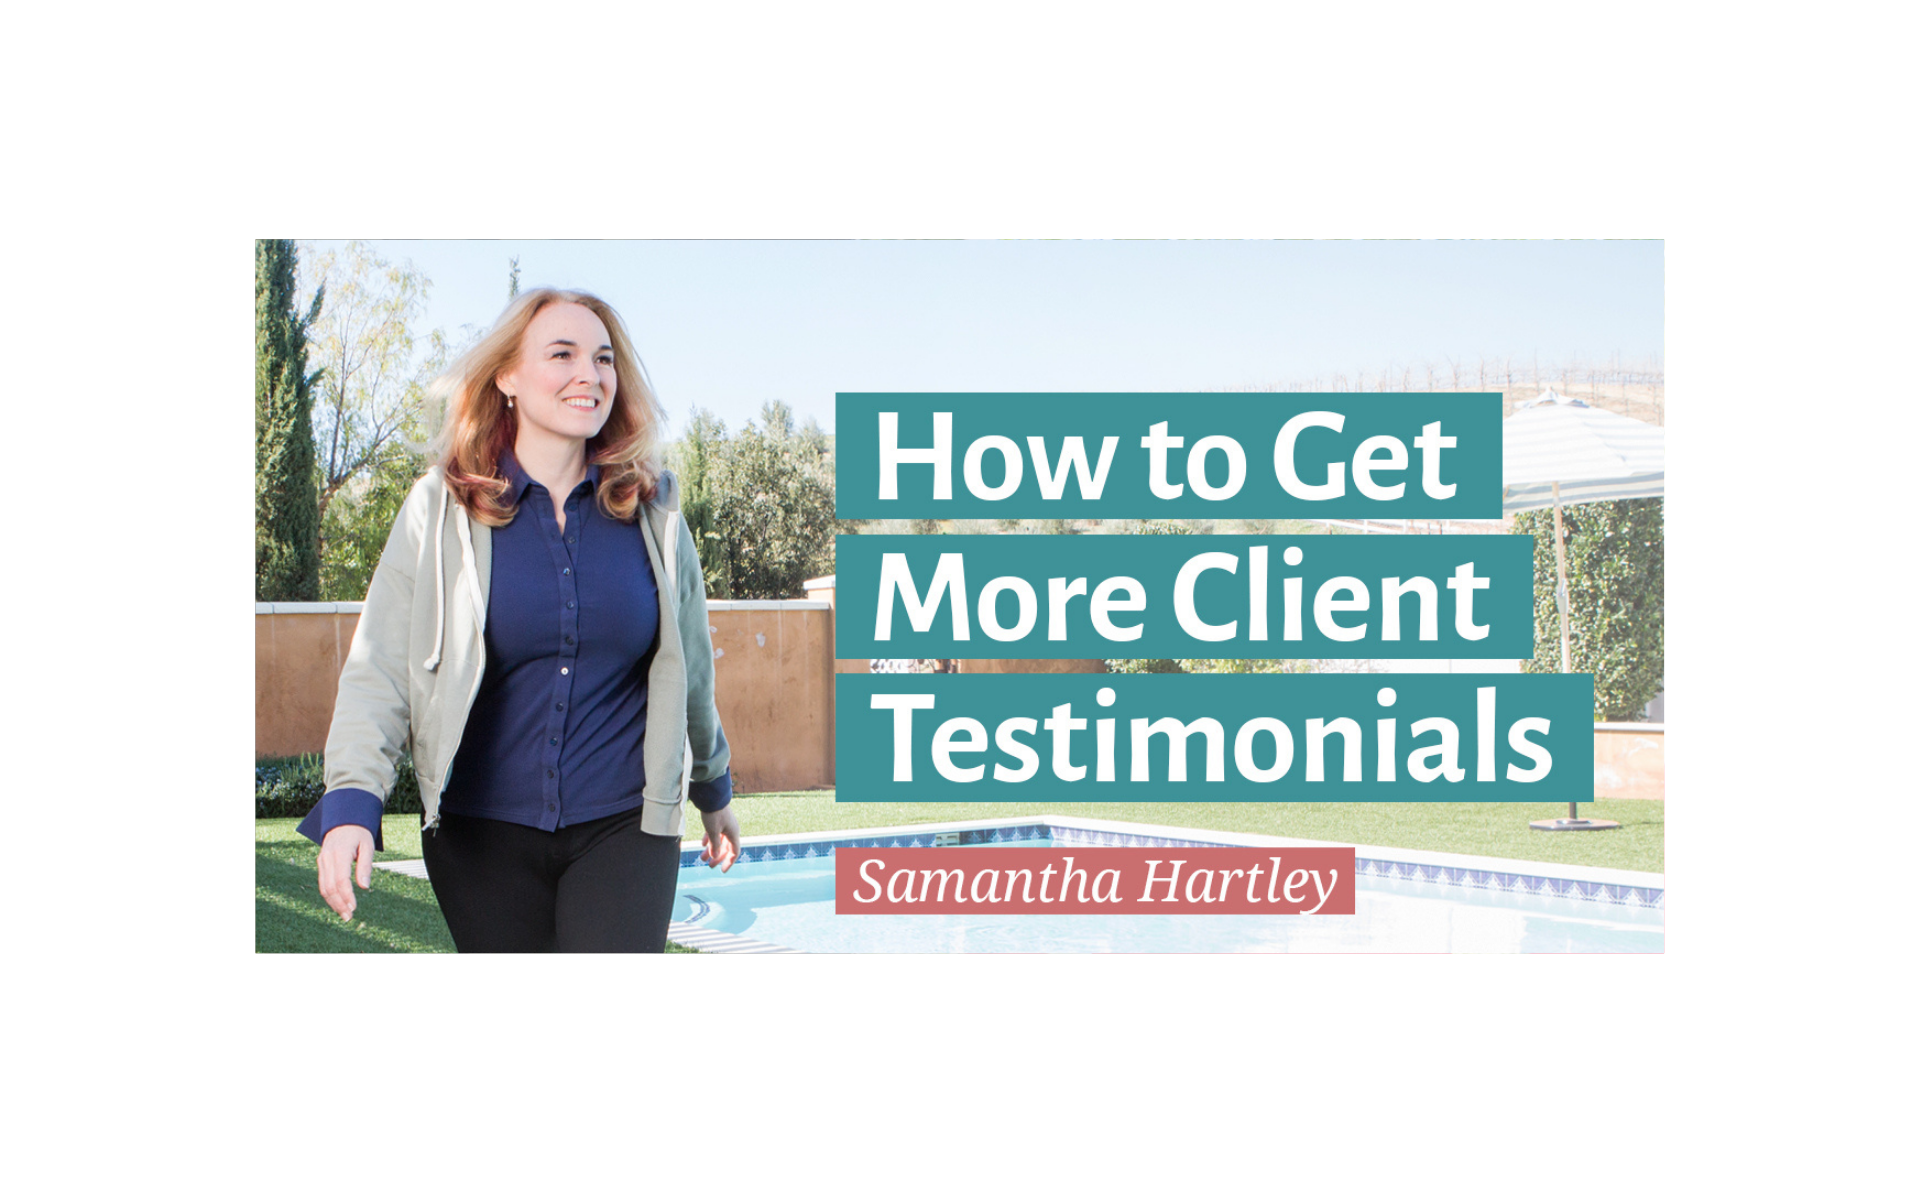 How to Get More Client Testimonials